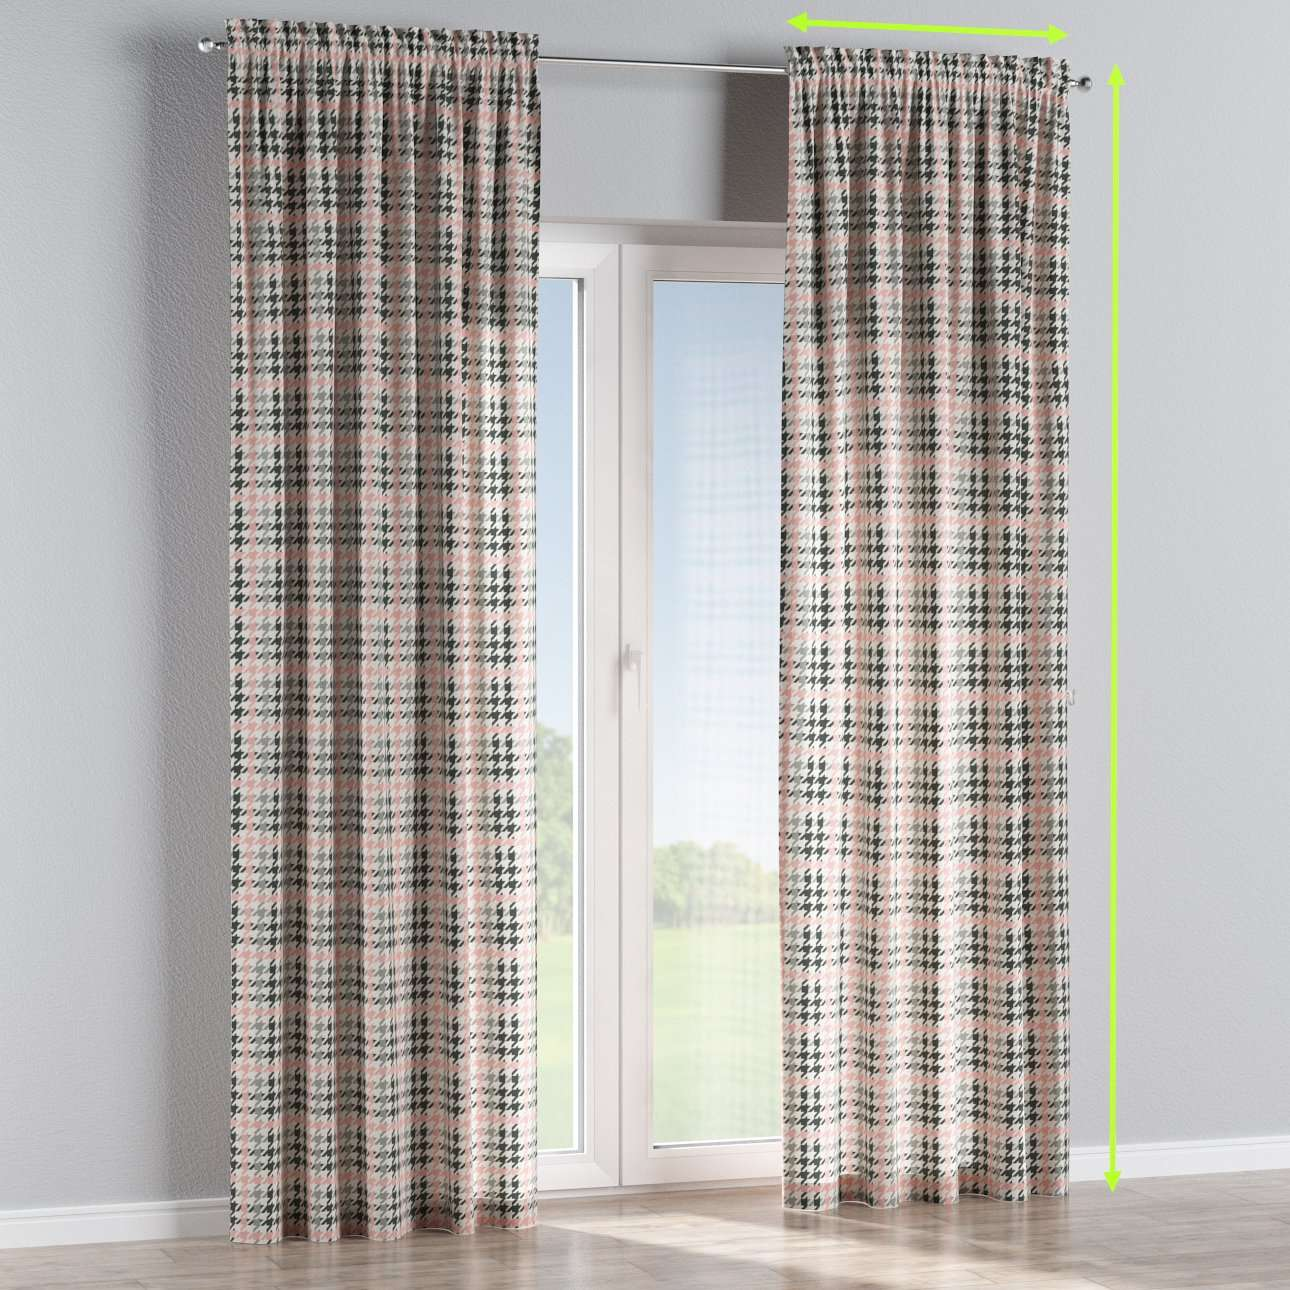 Slot and frill lined curtains in collection Brooklyn, fabric: 137-75